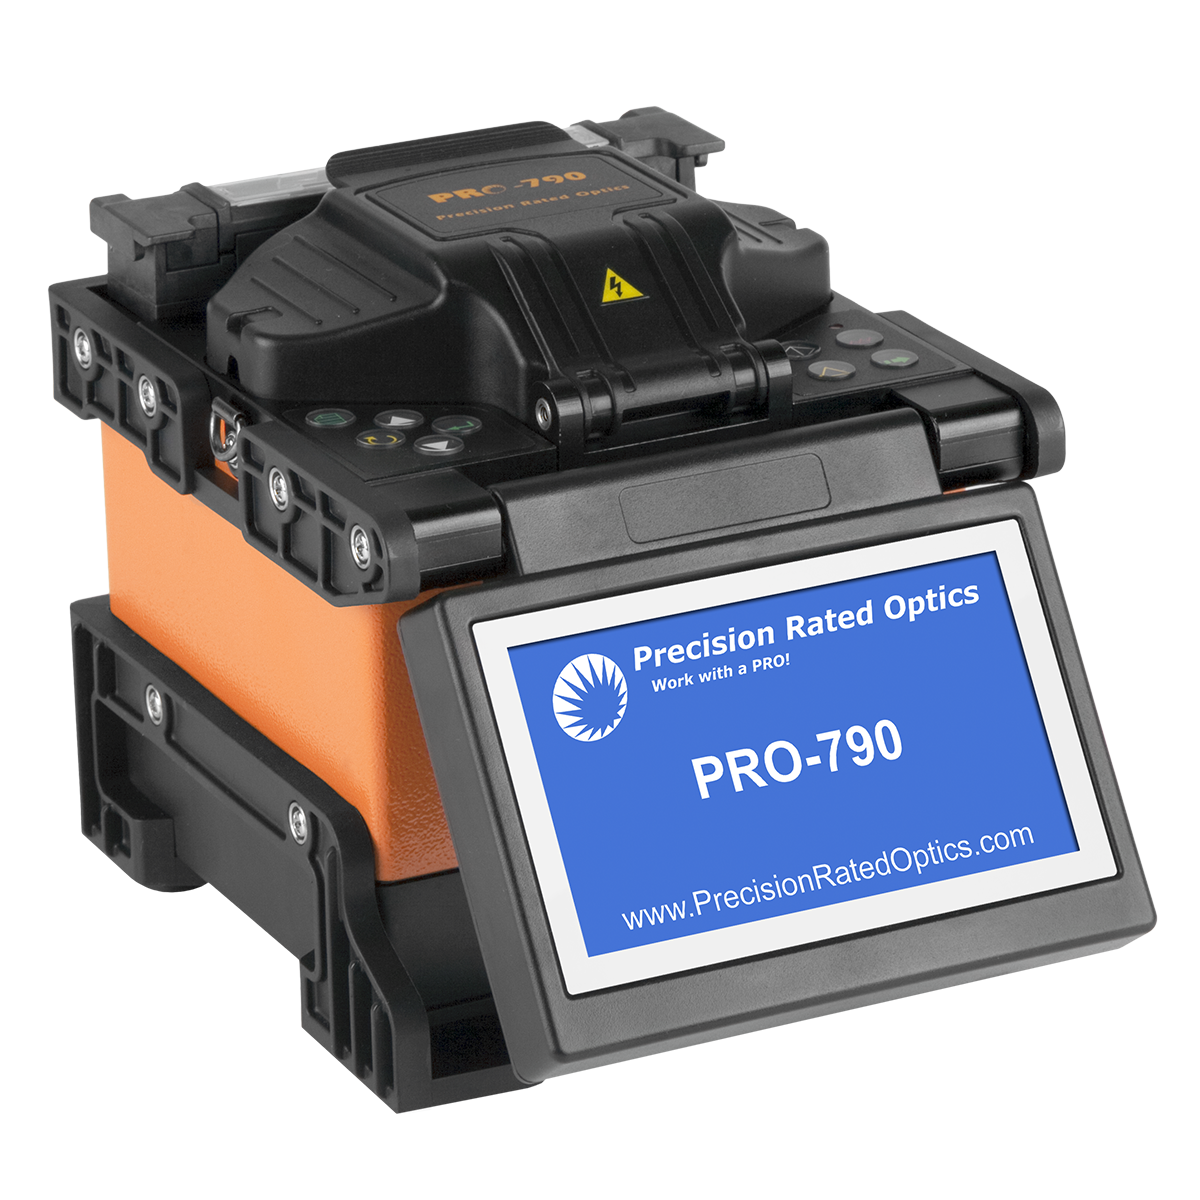 Precision Rated Optics - PRO-790 Fusion Splicer